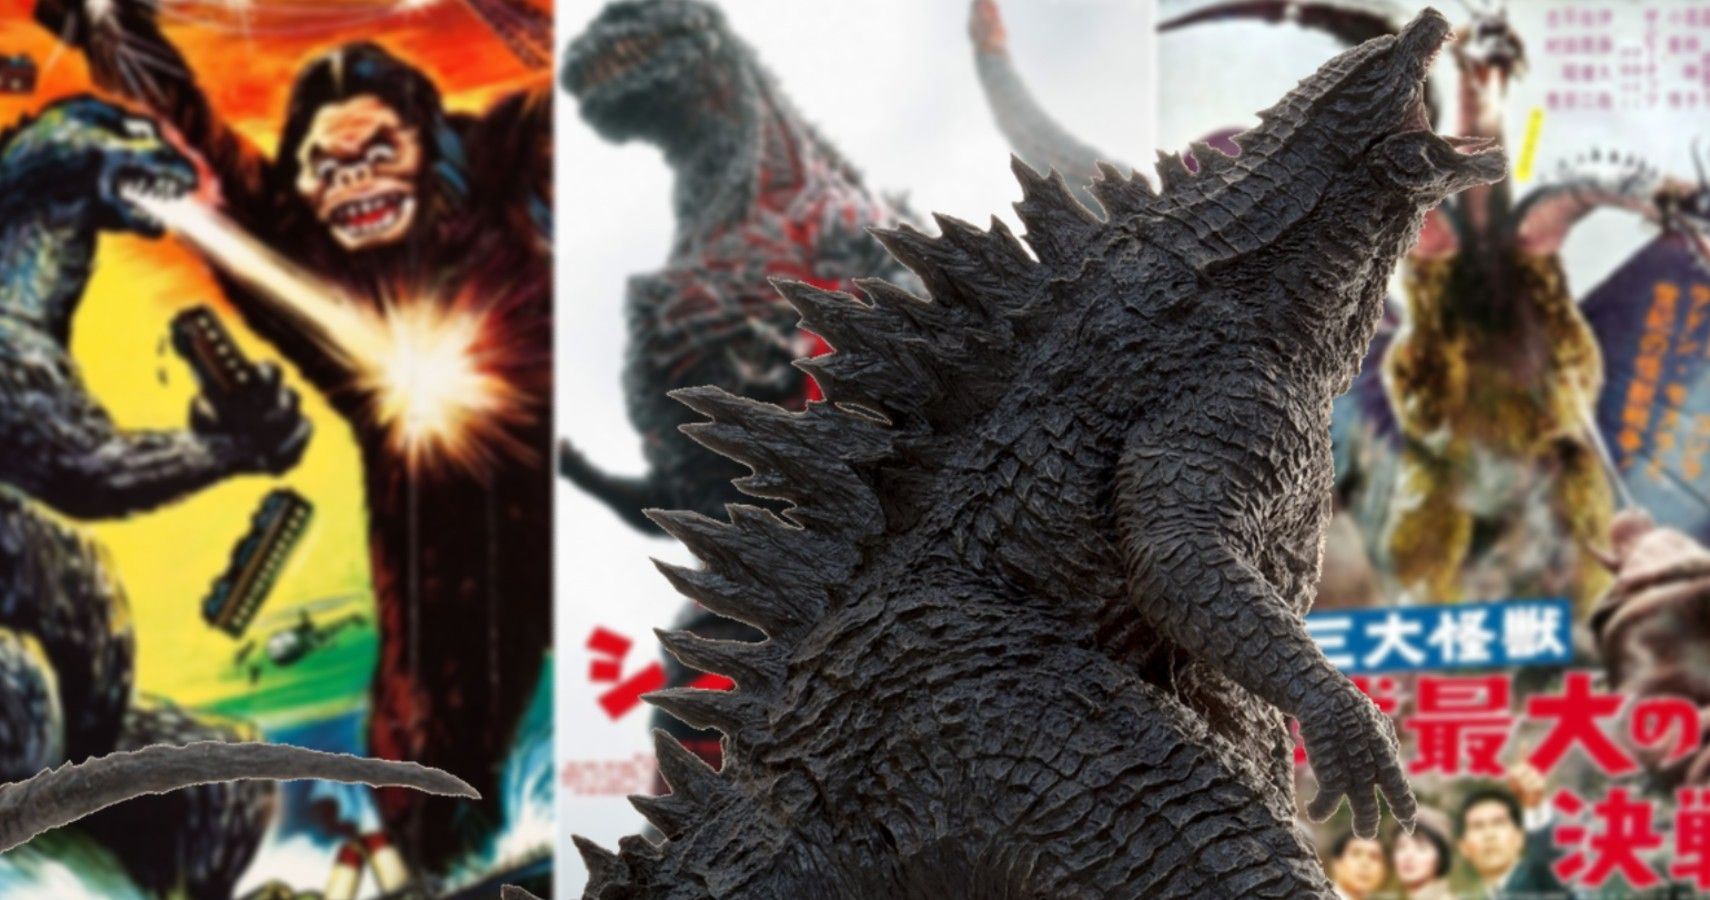 Godzilla: The 10 Best Movies In The Entire Franchise, Ranked